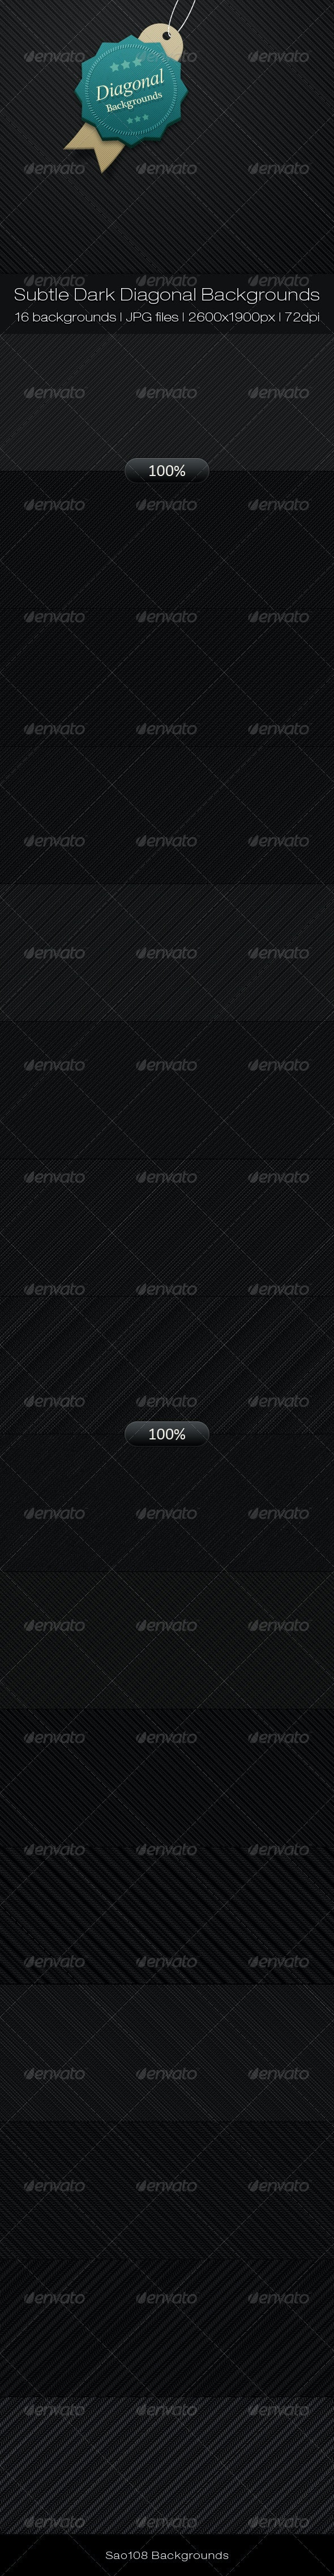 Subtle Dark Diagonal Backgrounds by Sao108 | GraphicRiver